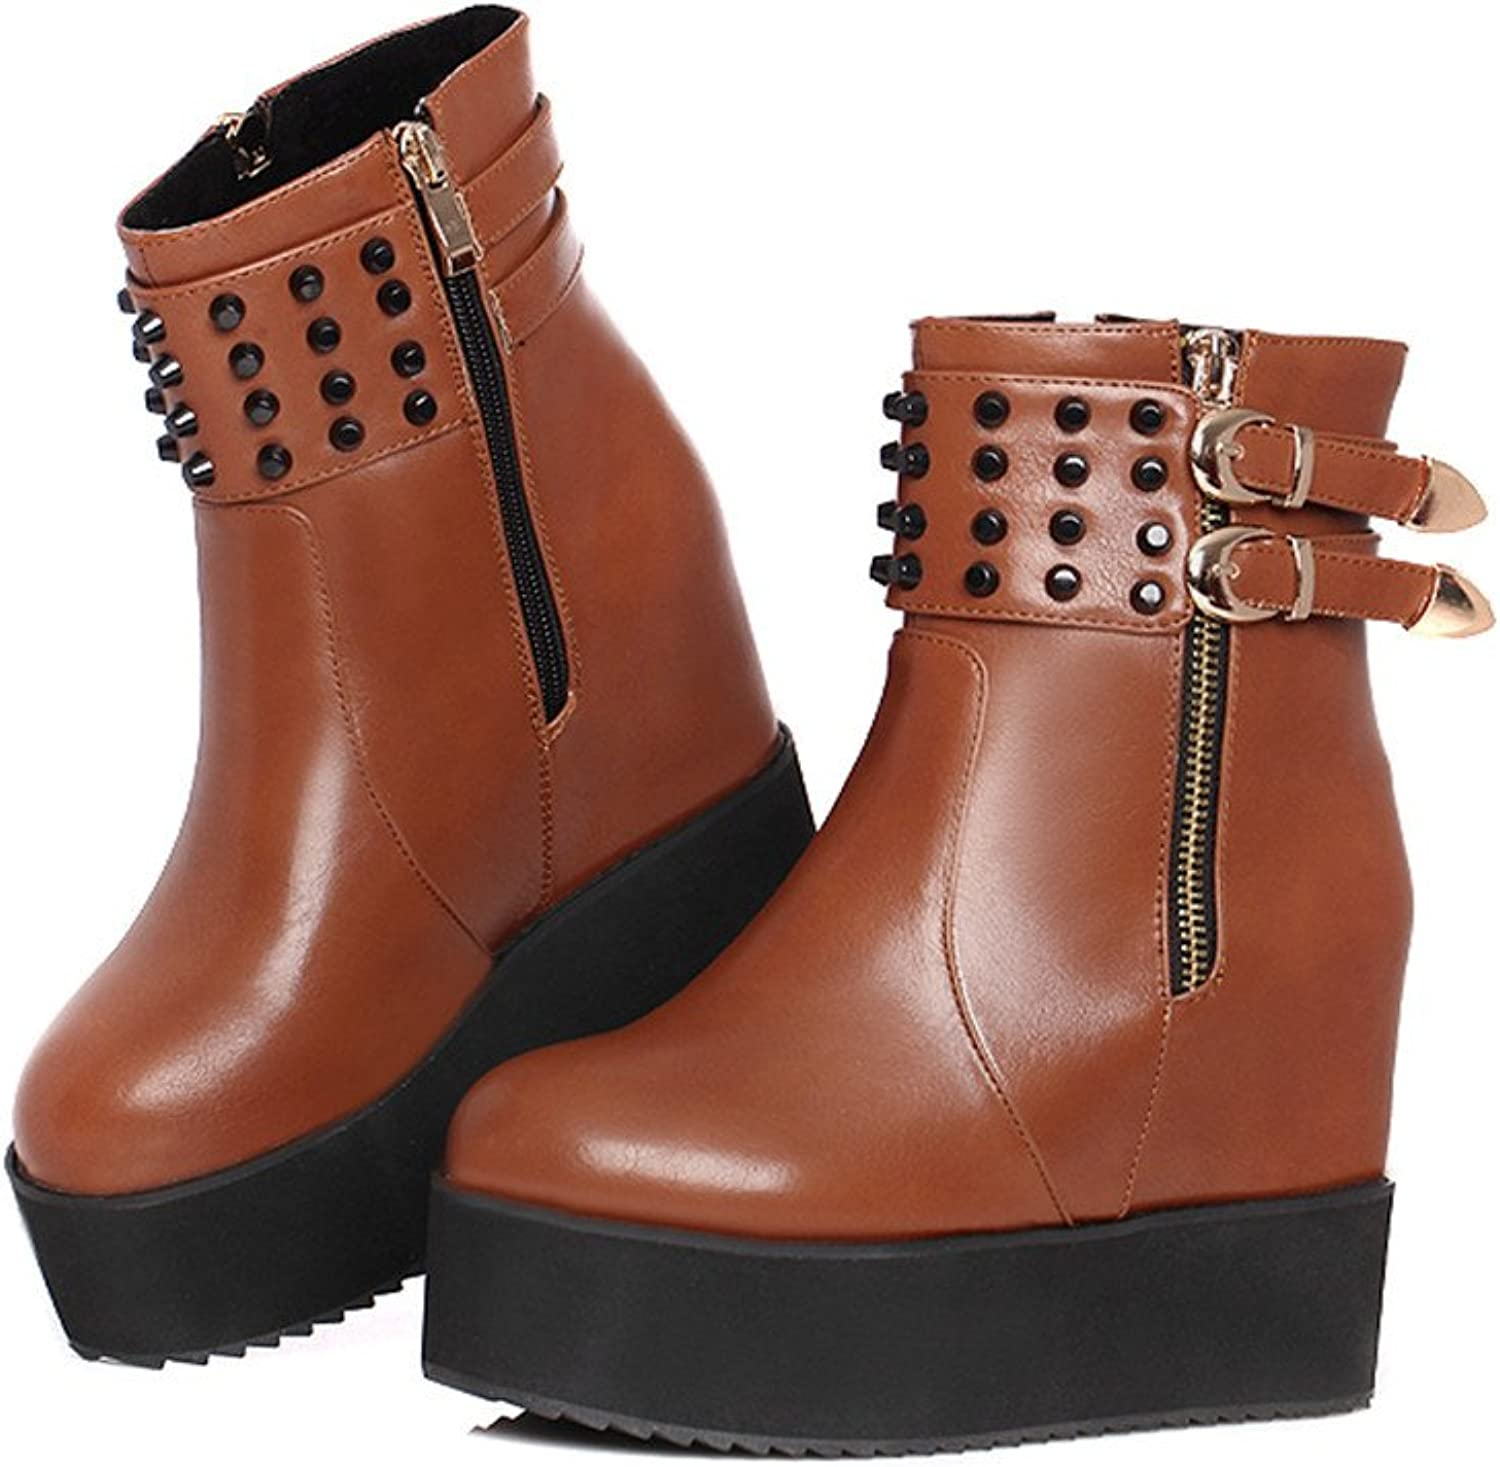 Fashion Heel Womens Inner Wedge Heel Round Toe Platform Studded Ankle Boot